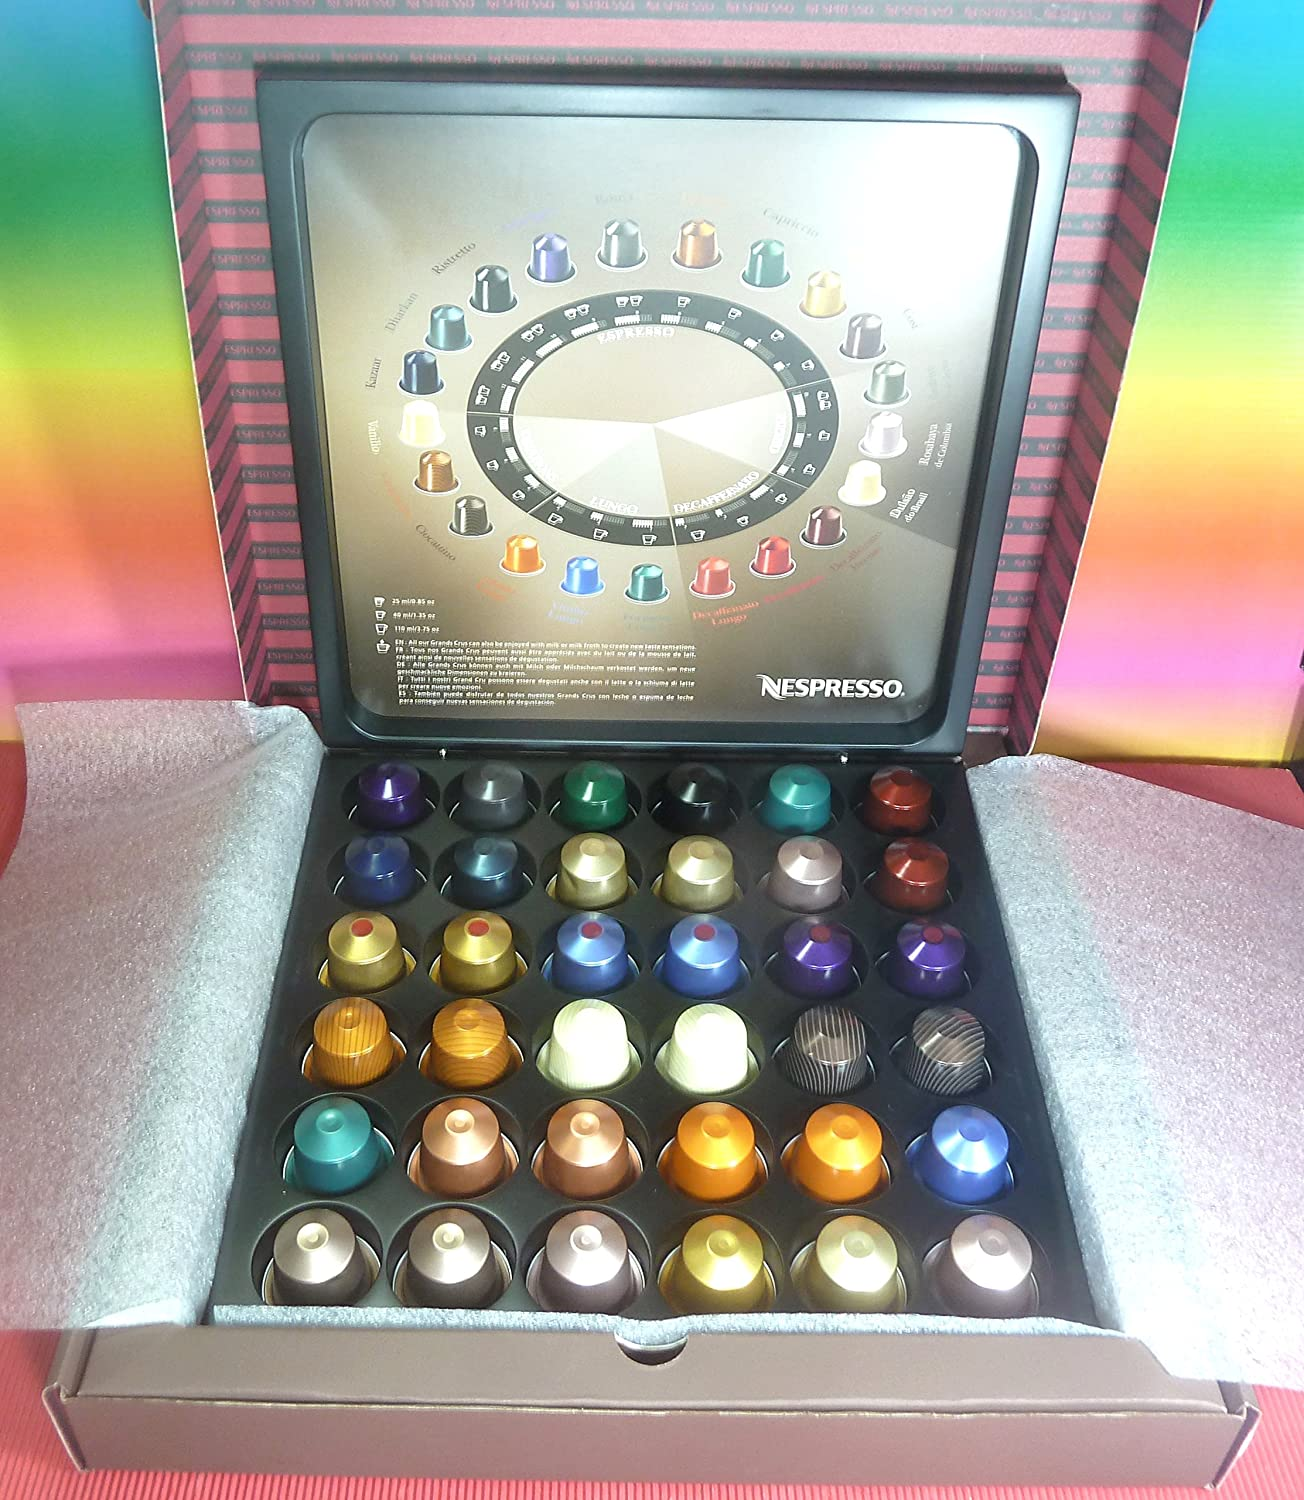 Nespresso 36 x Assorted Capsules, With Free Wooden Case - Gift Box - Pod Holder. (Capacity 36 capsules) Full Box